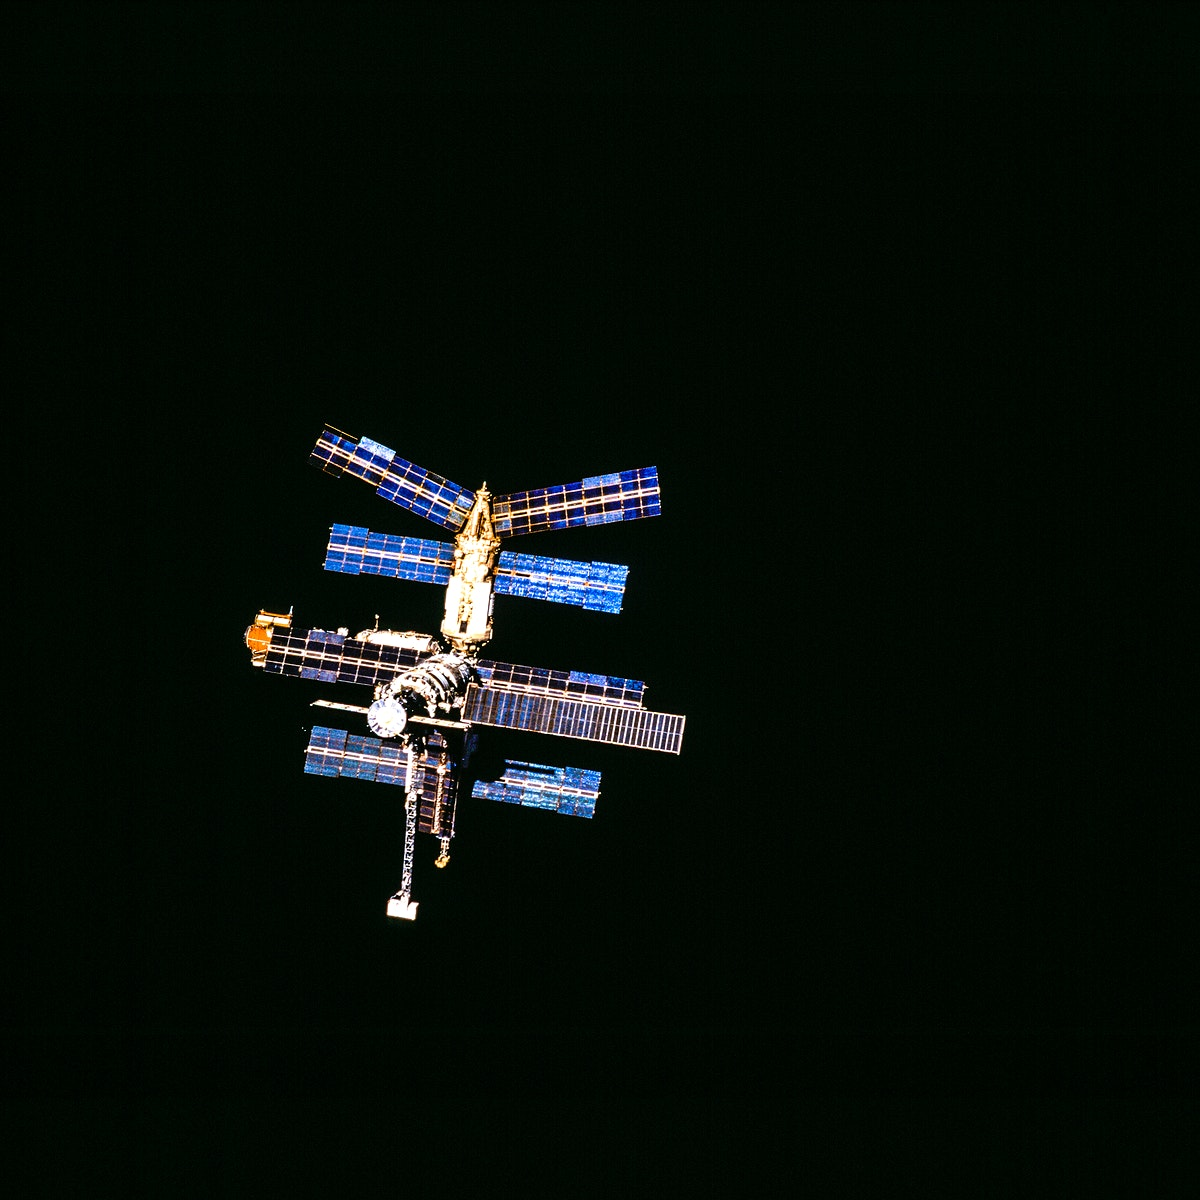 Russia's Mir Space Station during a final fly-around on March 28, 1996. Original from NASA. Digitally enhanced by rawpixel.